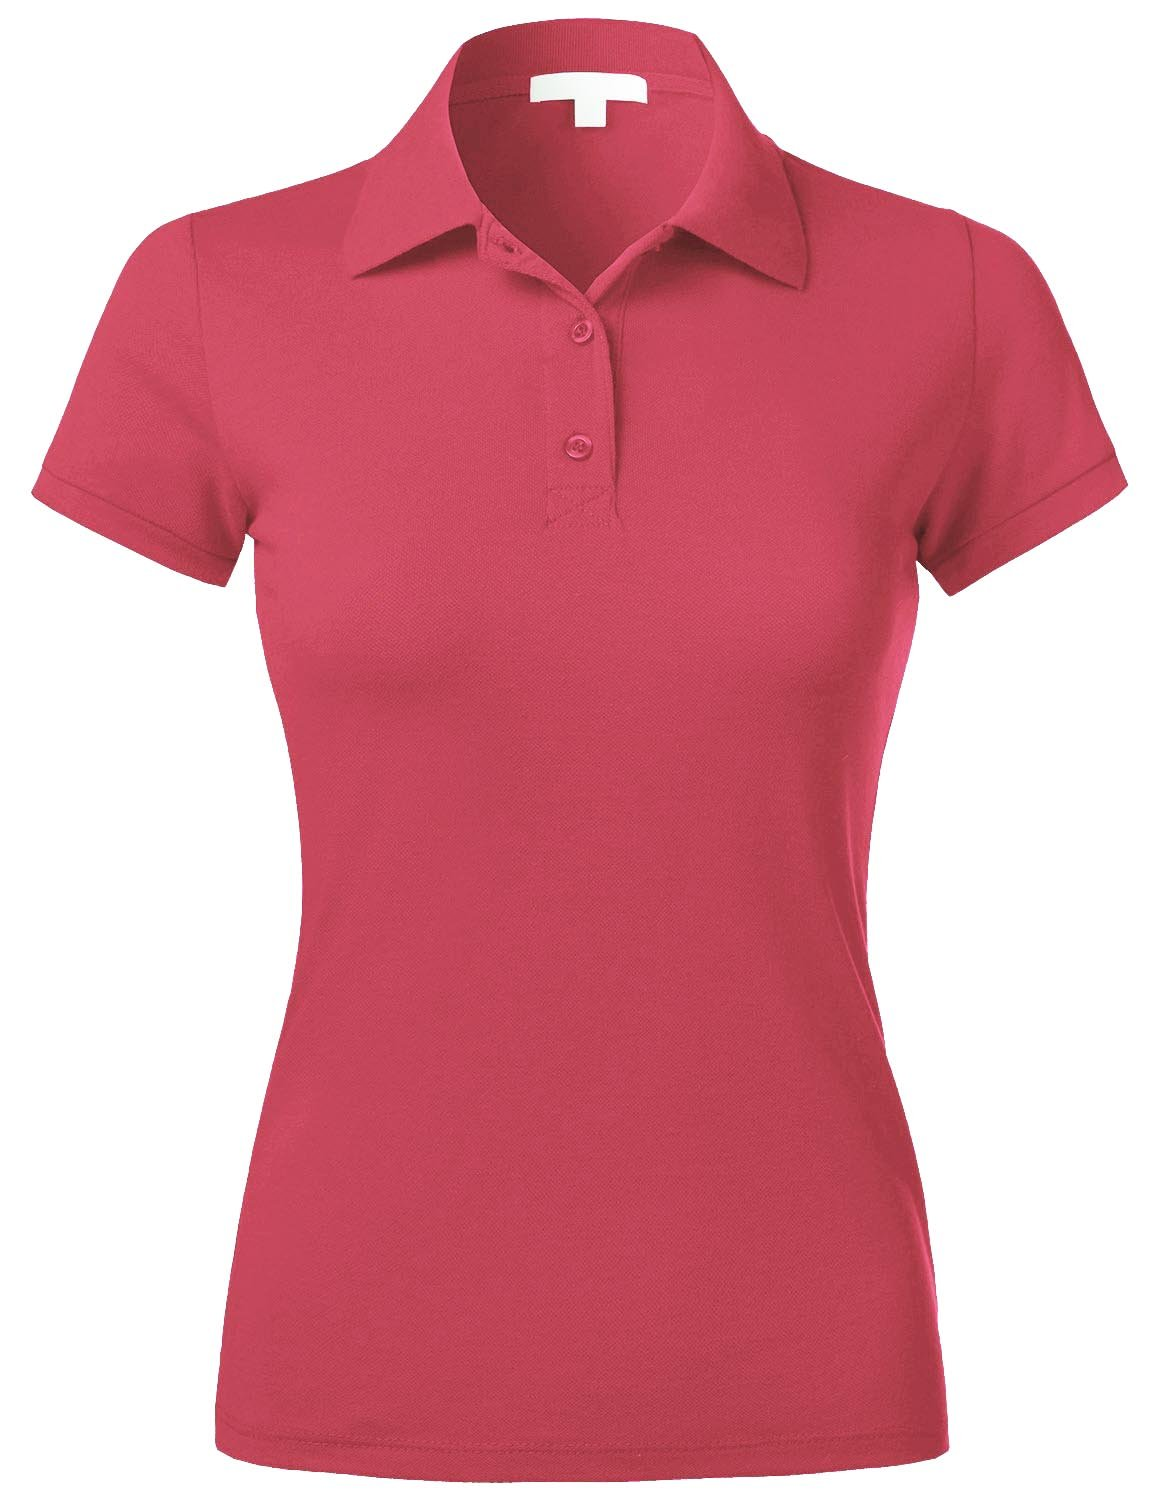 Hat and Beyond EC Womens Polo Shirts Casual Pique Solid Short Sleeve Slim Fit Top 3ECA0001 (3X-Large, 01_hotpink)